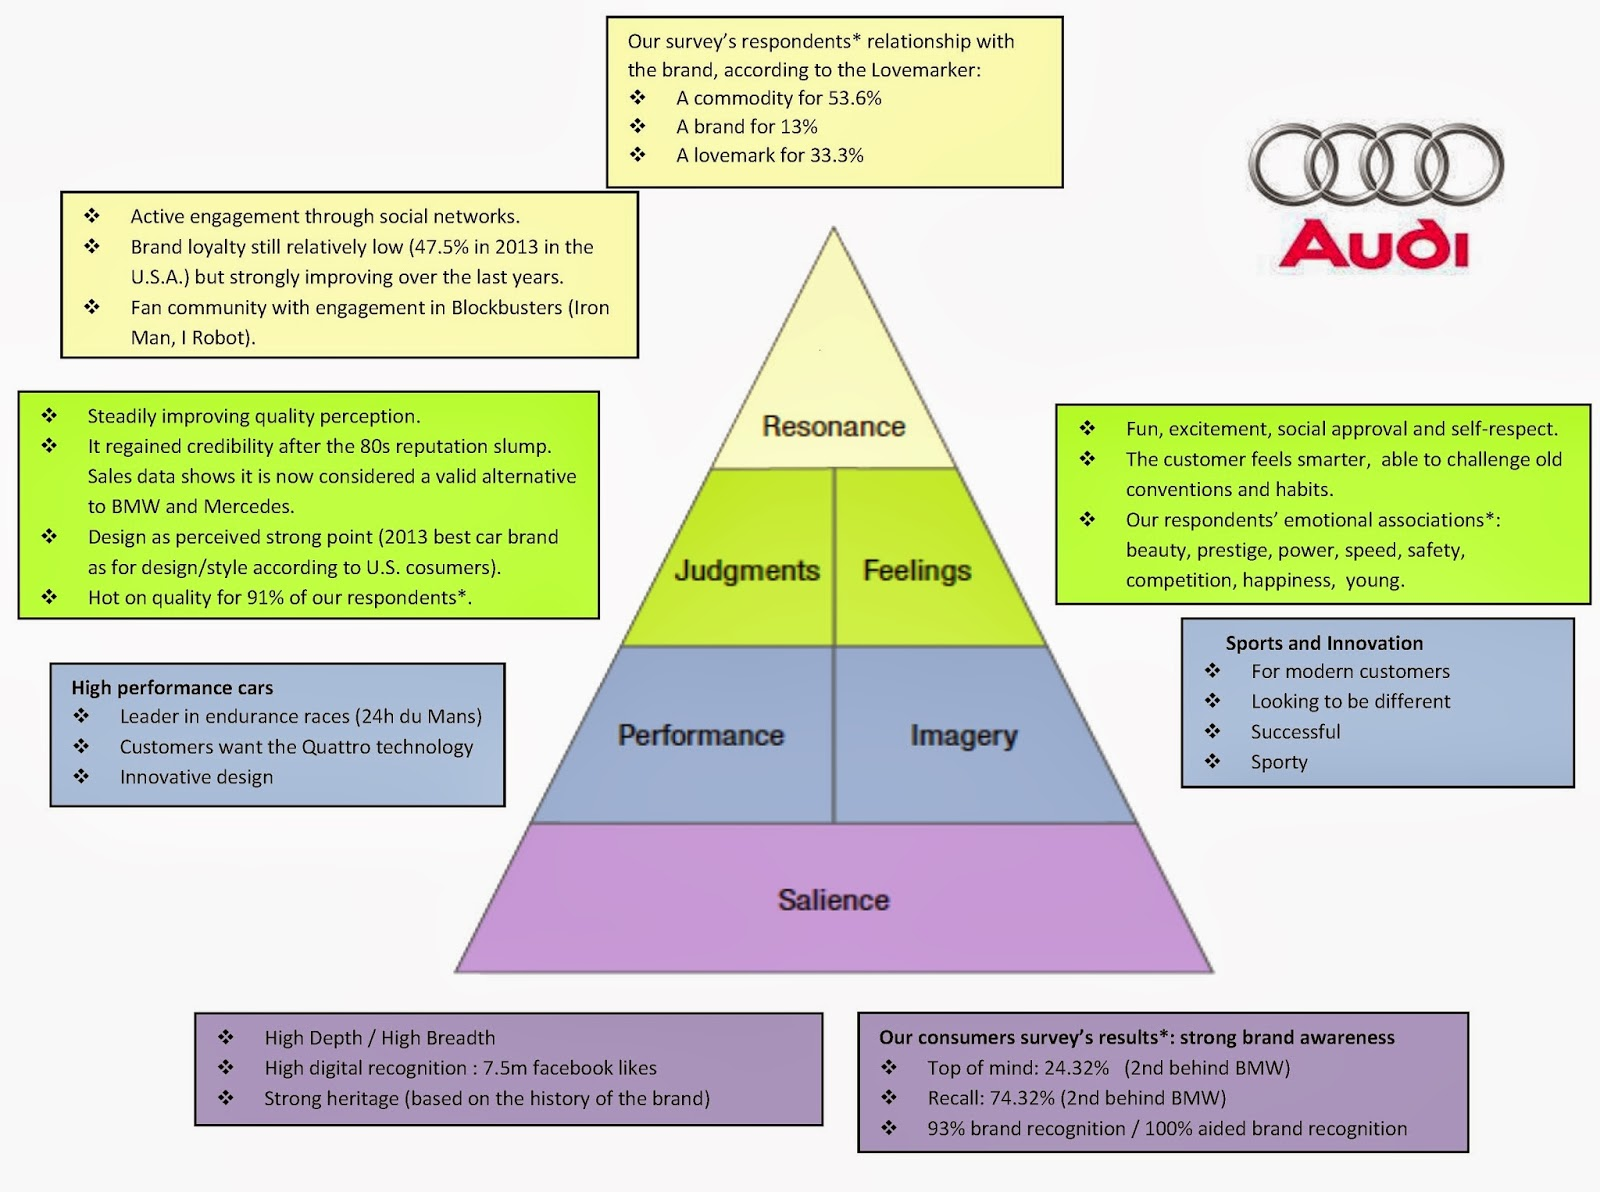 Brand management of Audi